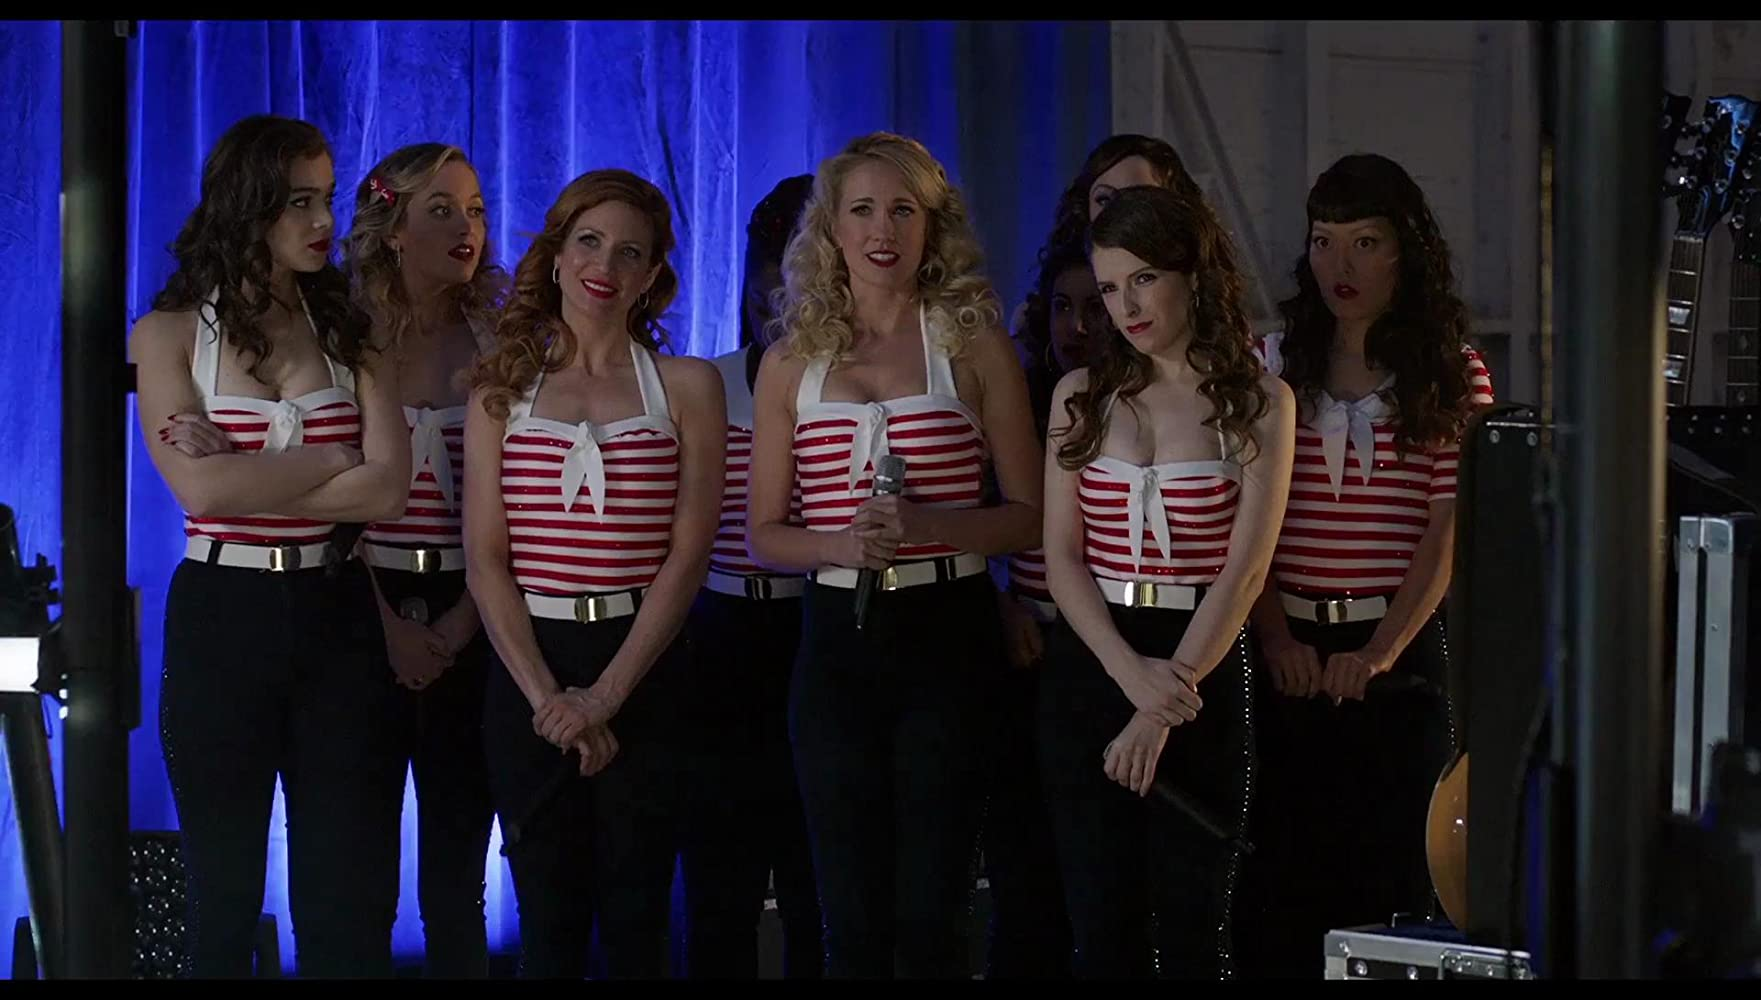 Anna Kendrick, Brittany Snow, Anna Camp, Hana Mae Lee, Hailee Steinfeld, and Kelley Jakle in Pitch Perfect 3 (2017)